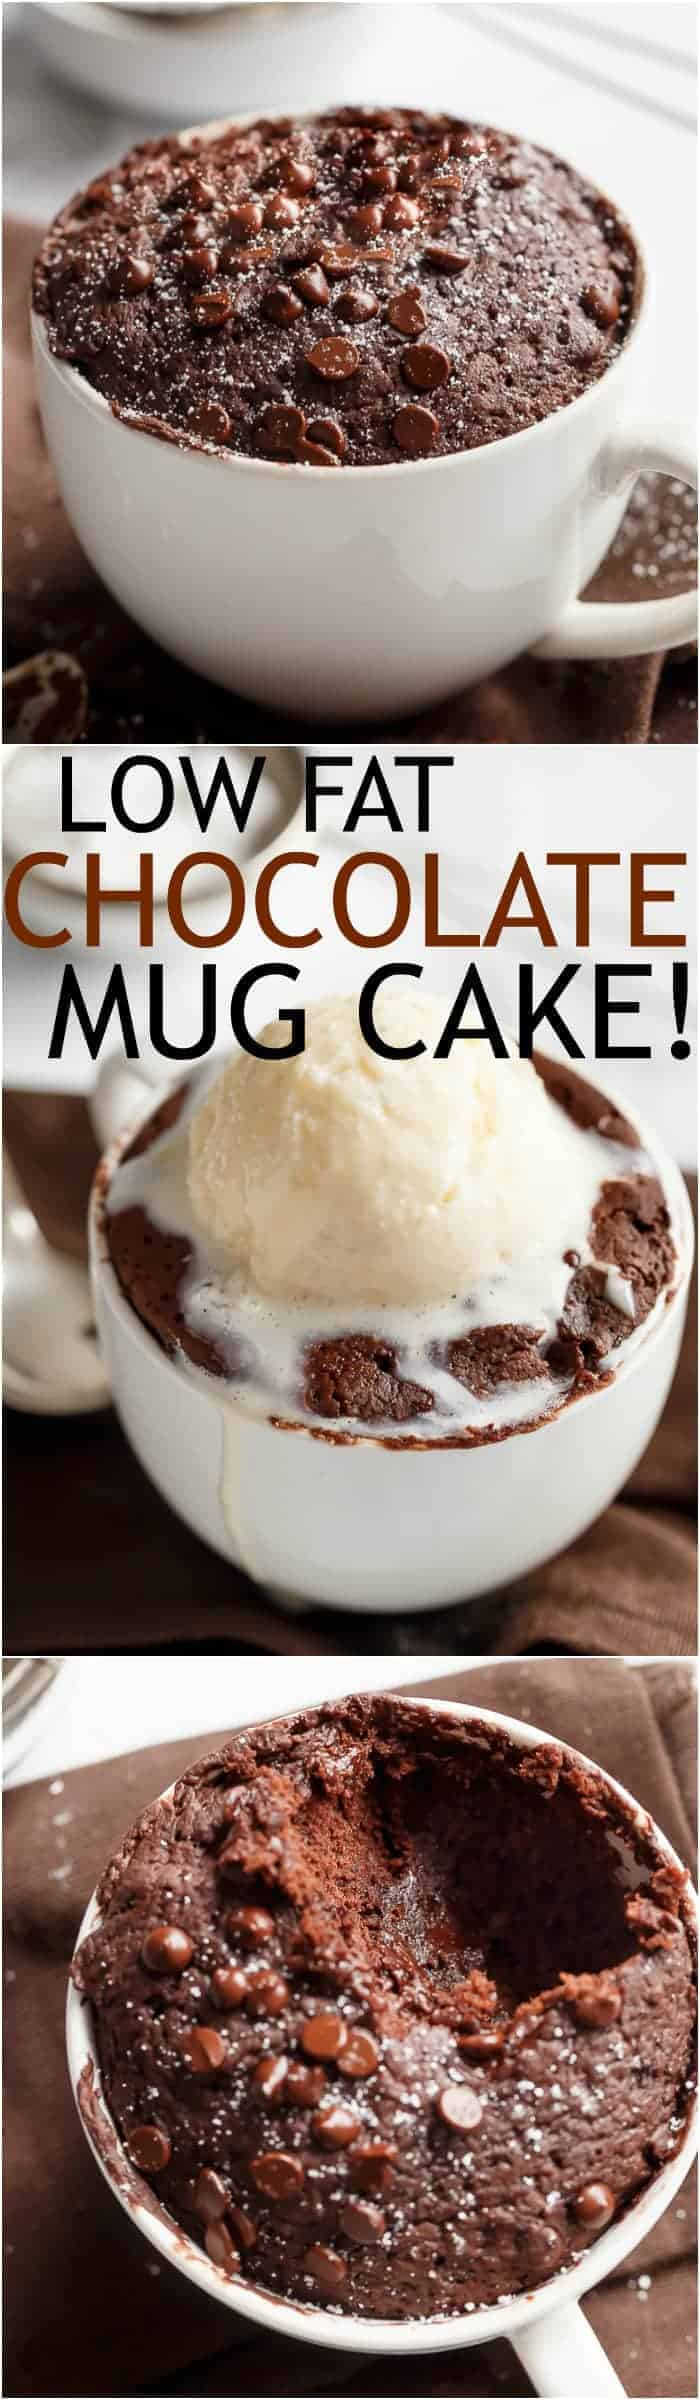 Low Fat Chocolate Mug Cake recipe WITH another video. Ready in less than one minute! Fluffy. Buttery and soft. The BEST low fat, guilt-free mug cake! | https://cafedelites.com